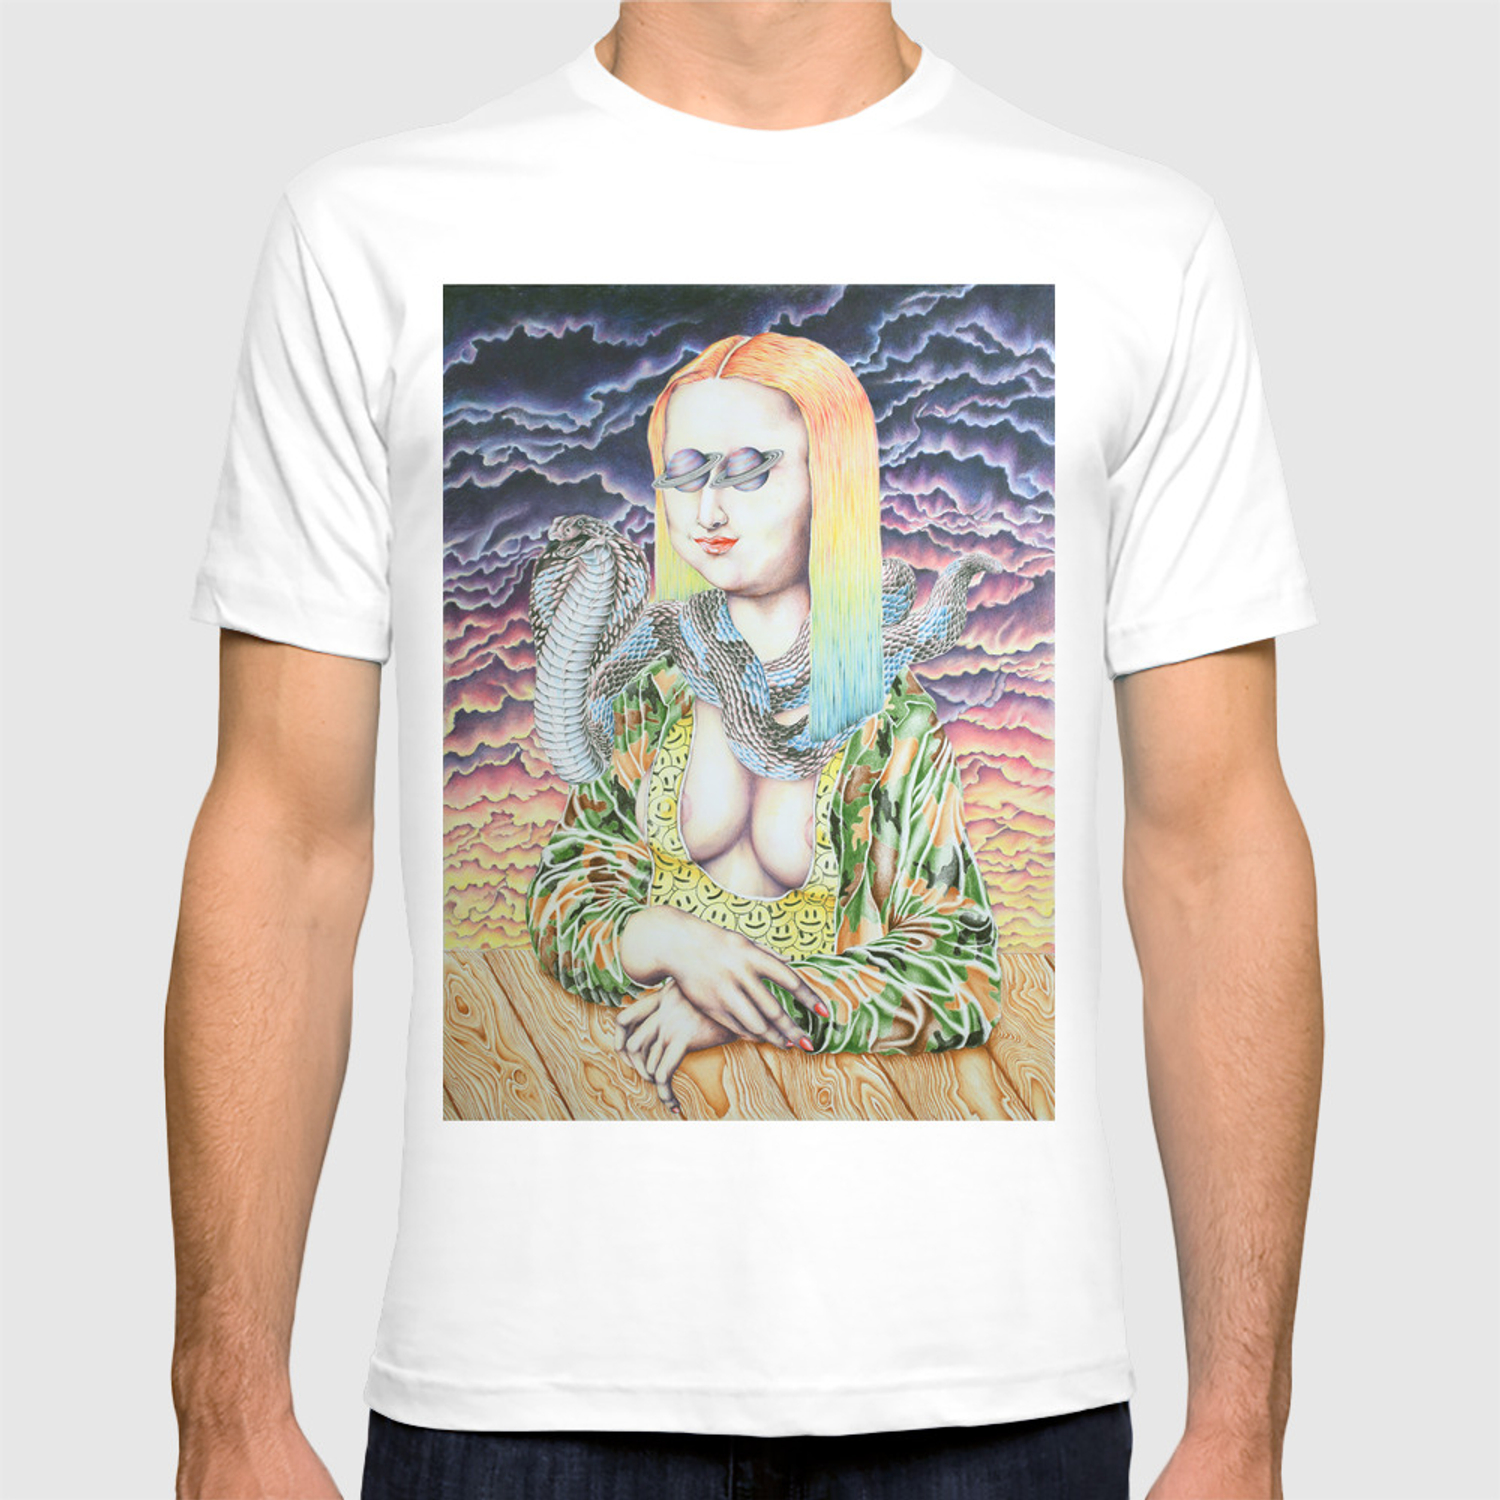 ff43121ff466 Mona Lisa and the Love Snake Live to Party T-shirt by cahillwessel    Society6